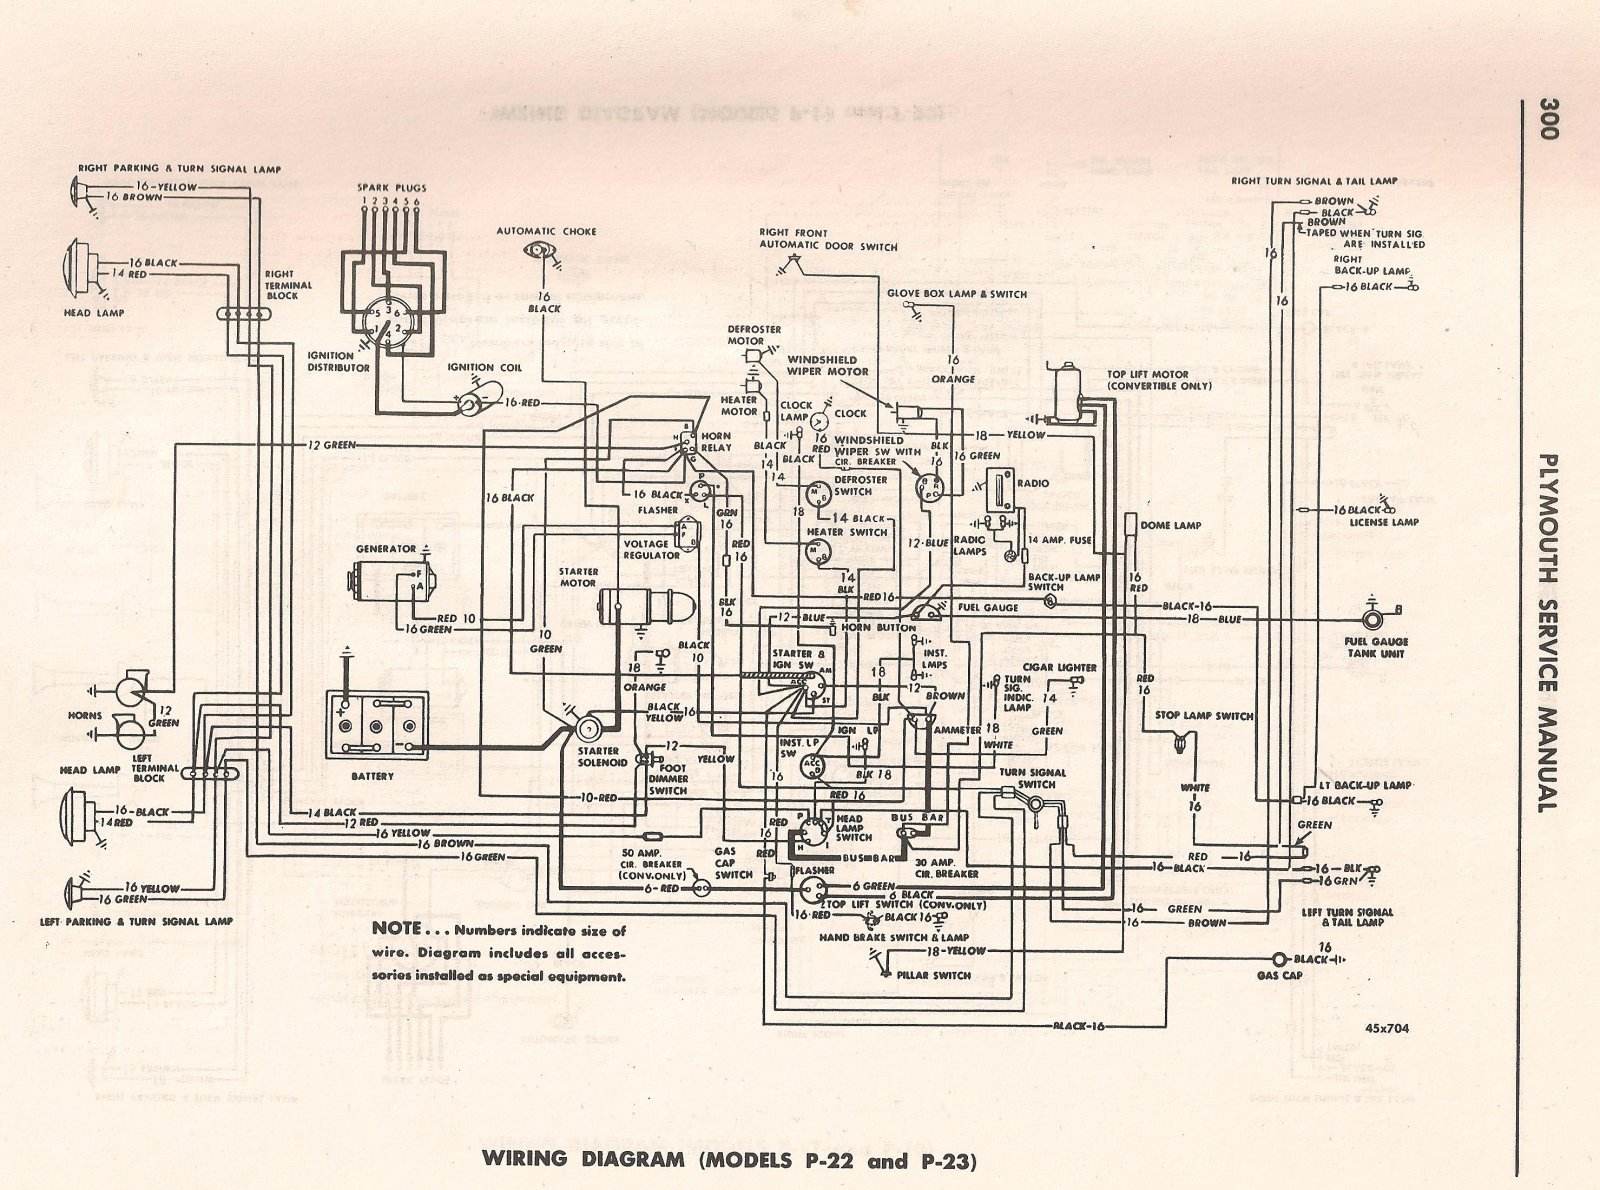 Plymouth Lights Wiring Diagram : Wiring diagram plymouth cranbrook